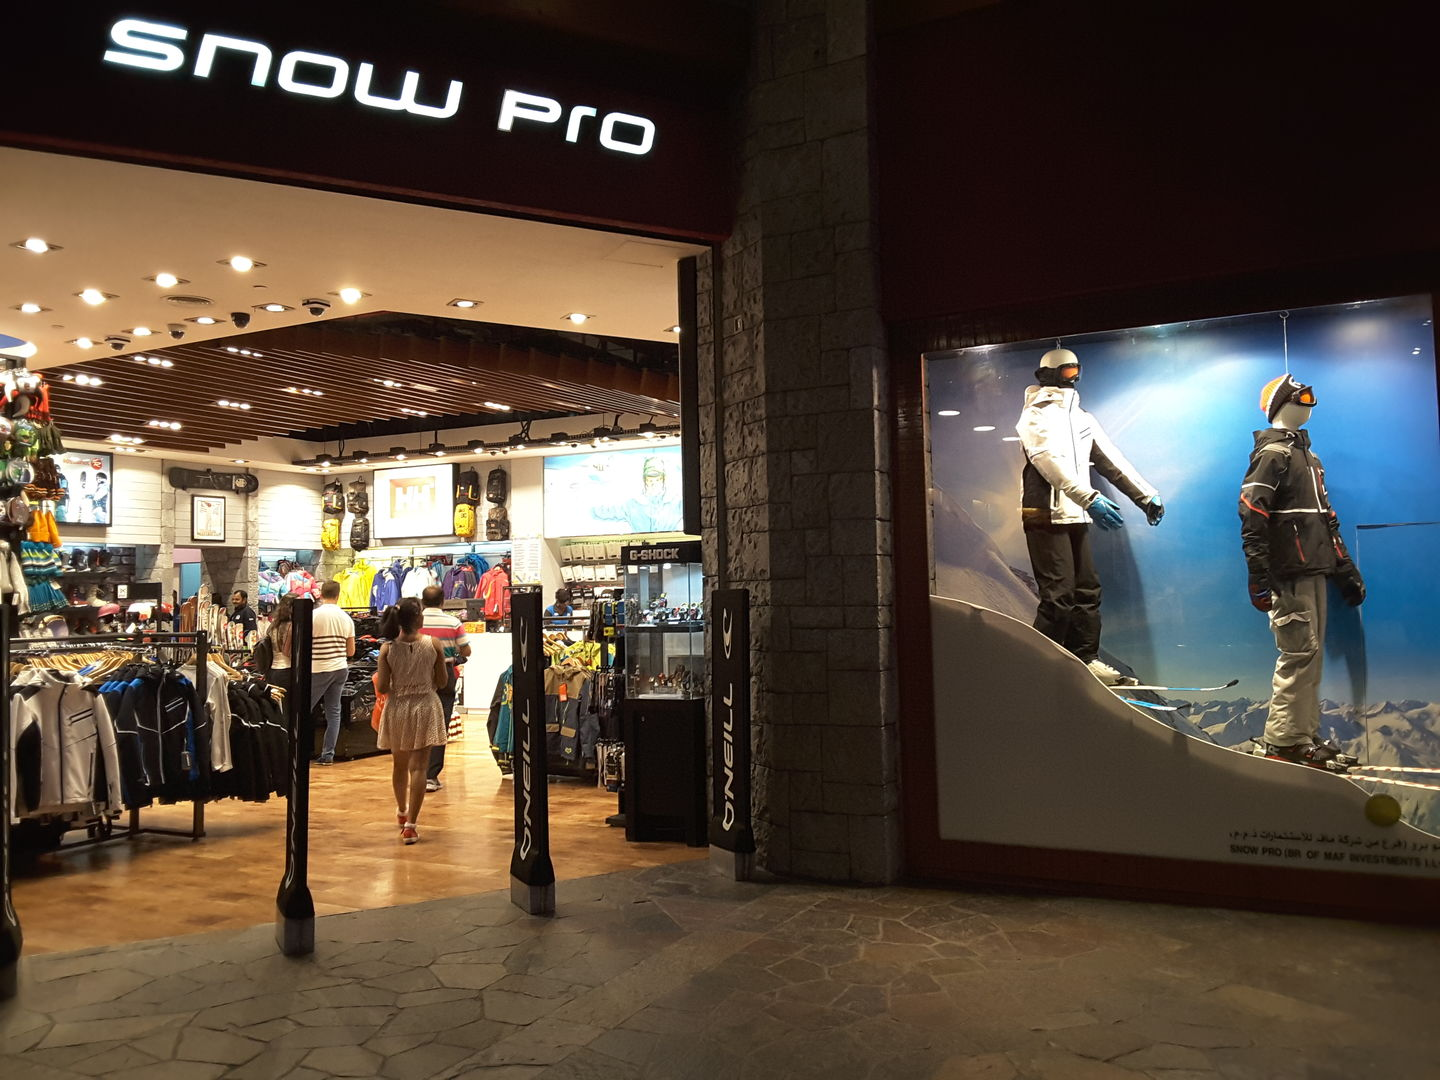 HiDubai-business-snowpro-shopping-apparel-al-barsha-1-dubai-2